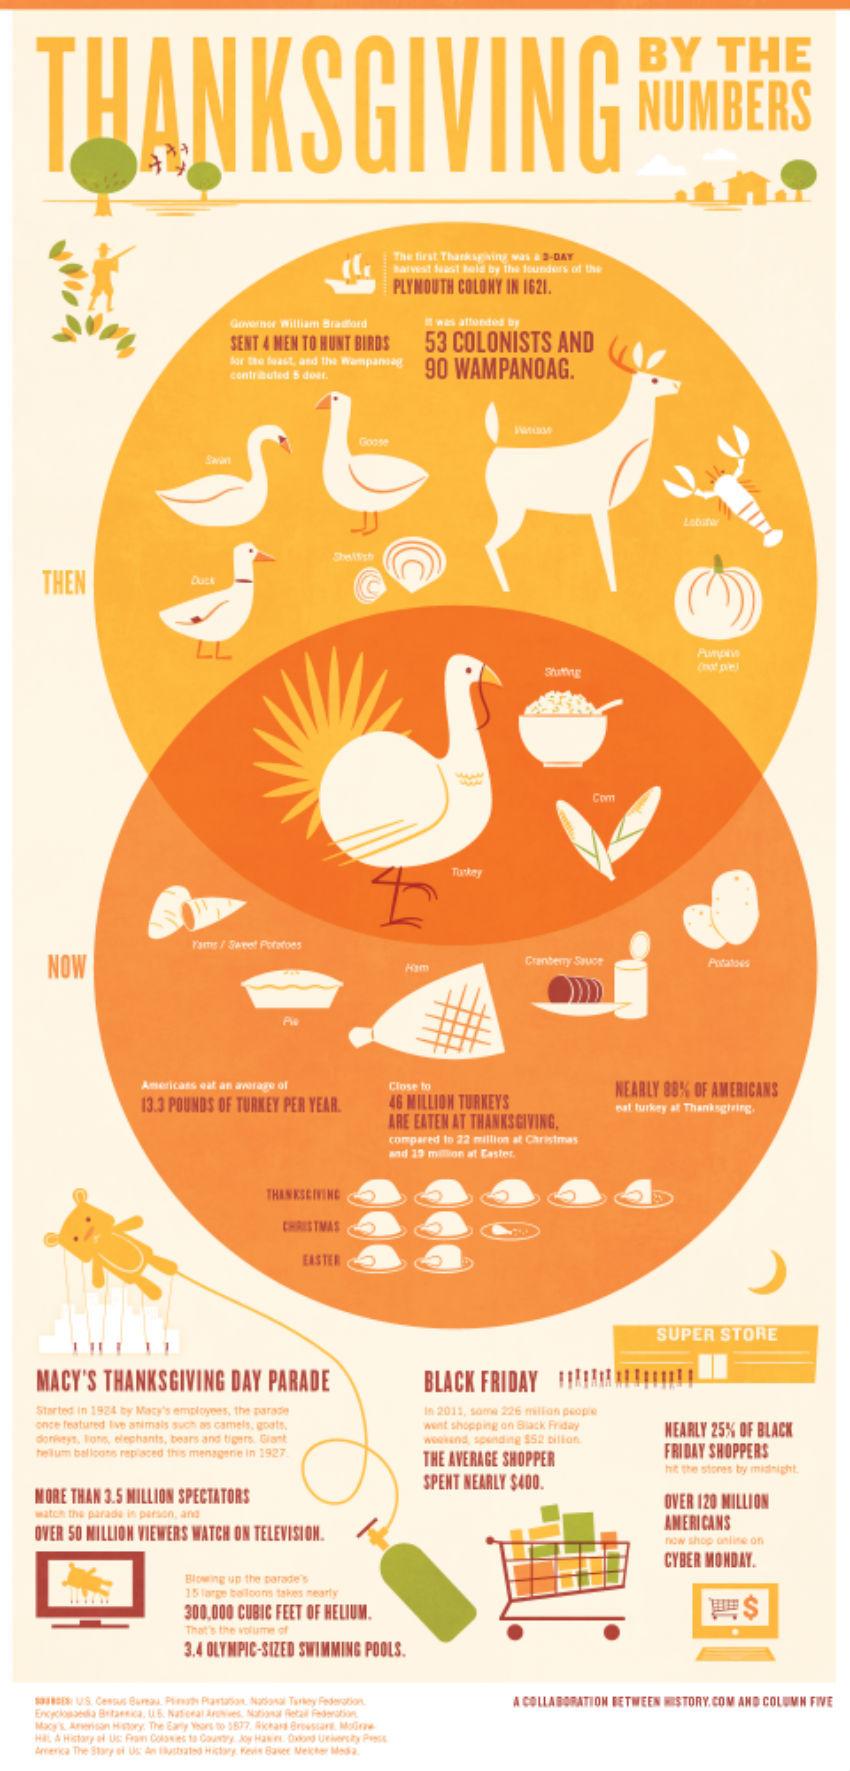 Some fun facts to entertain your guests and family. Image Source: Country Living